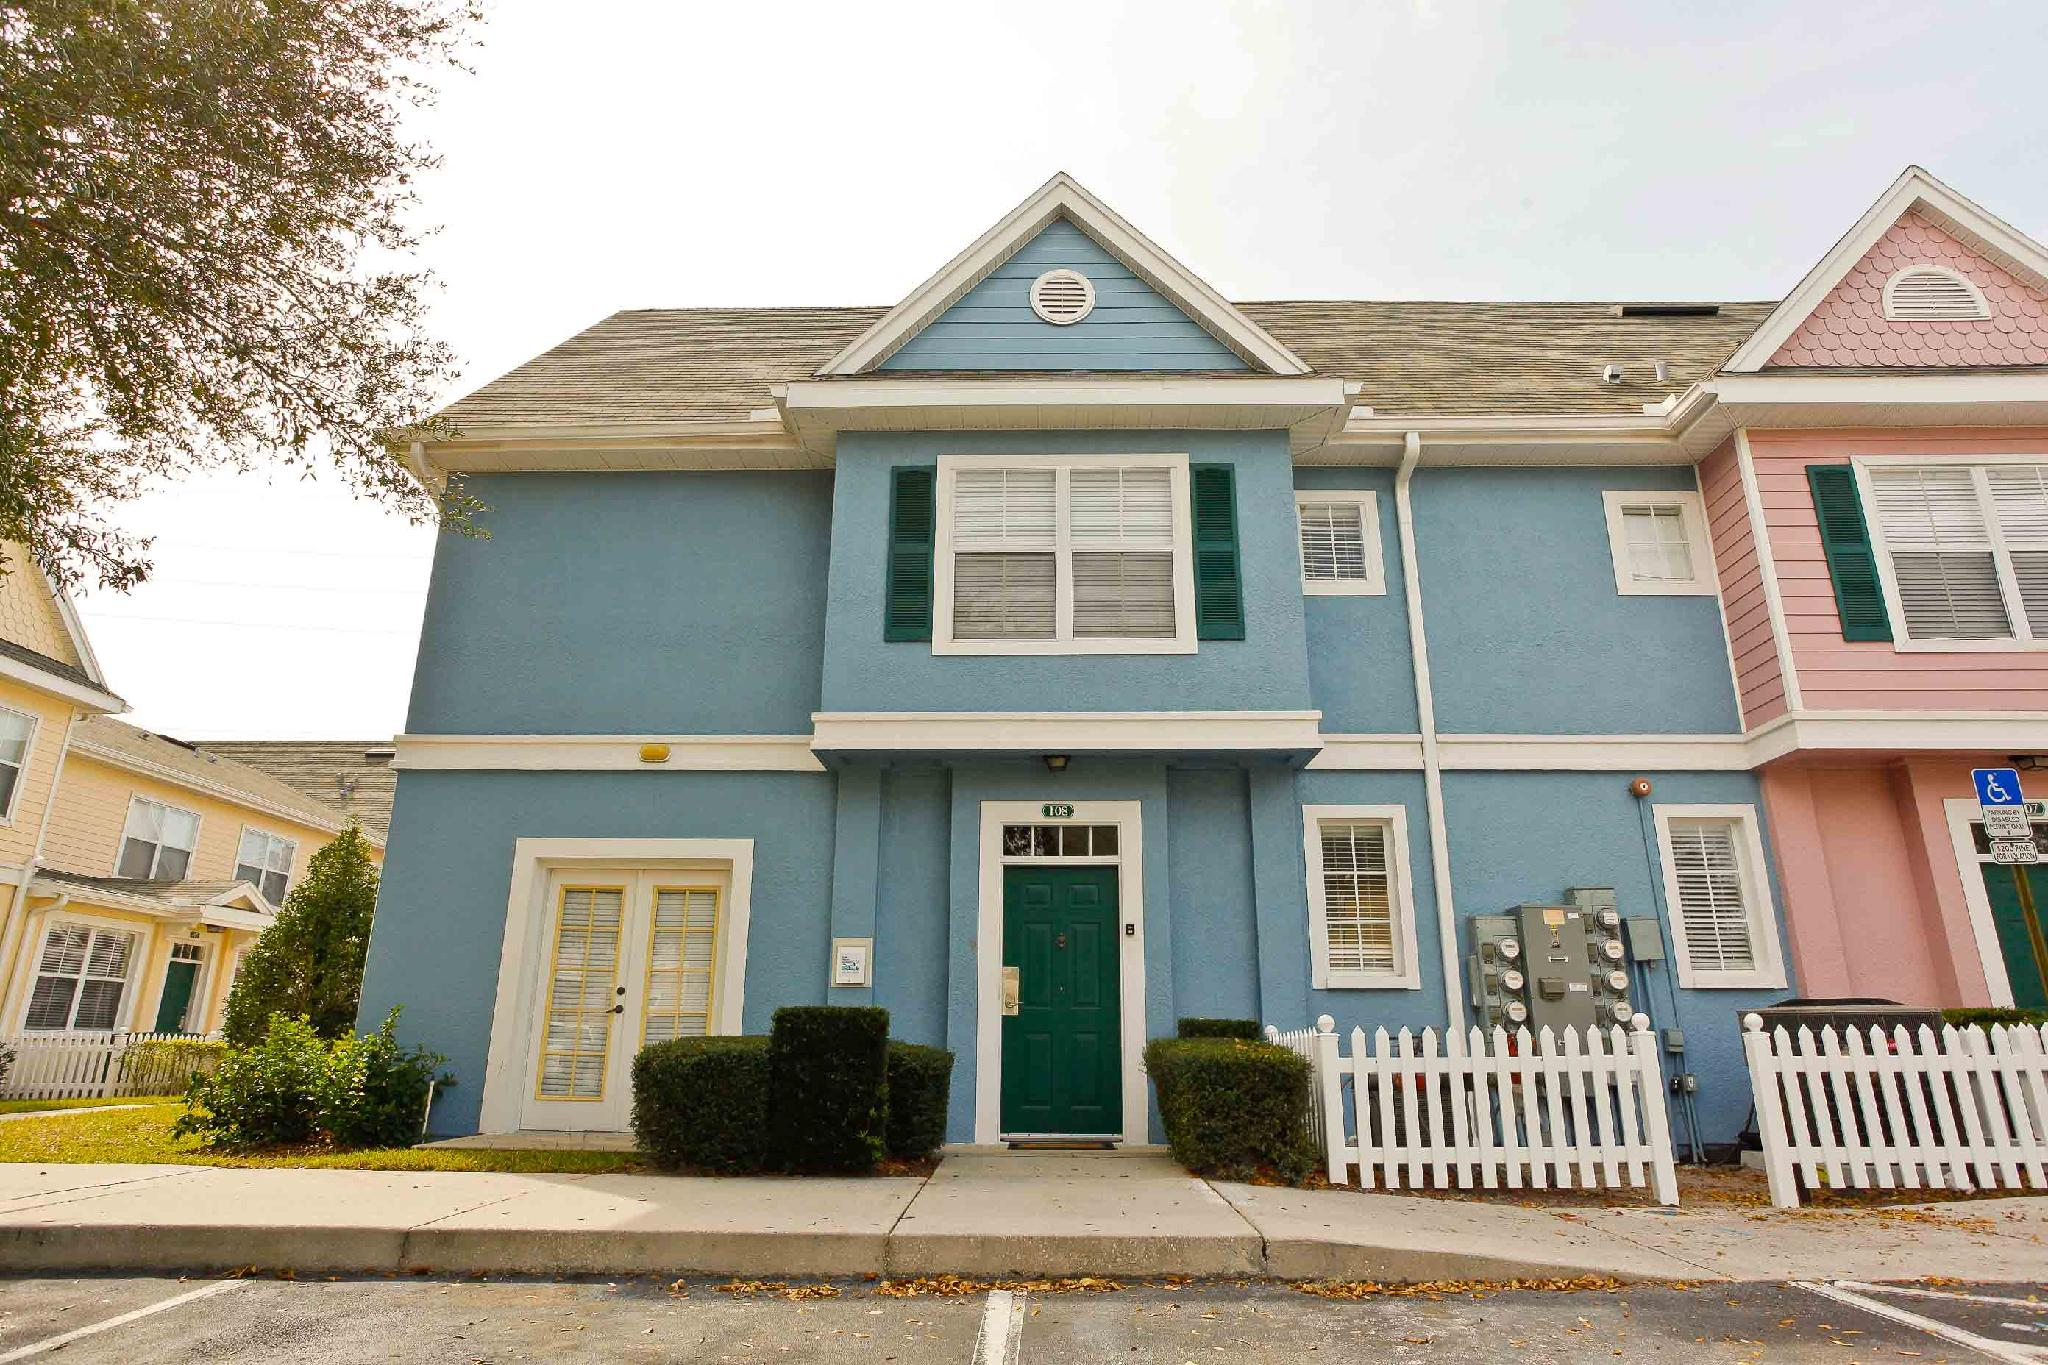 Perfect 4 BD house in gated community - 20 min from Dis